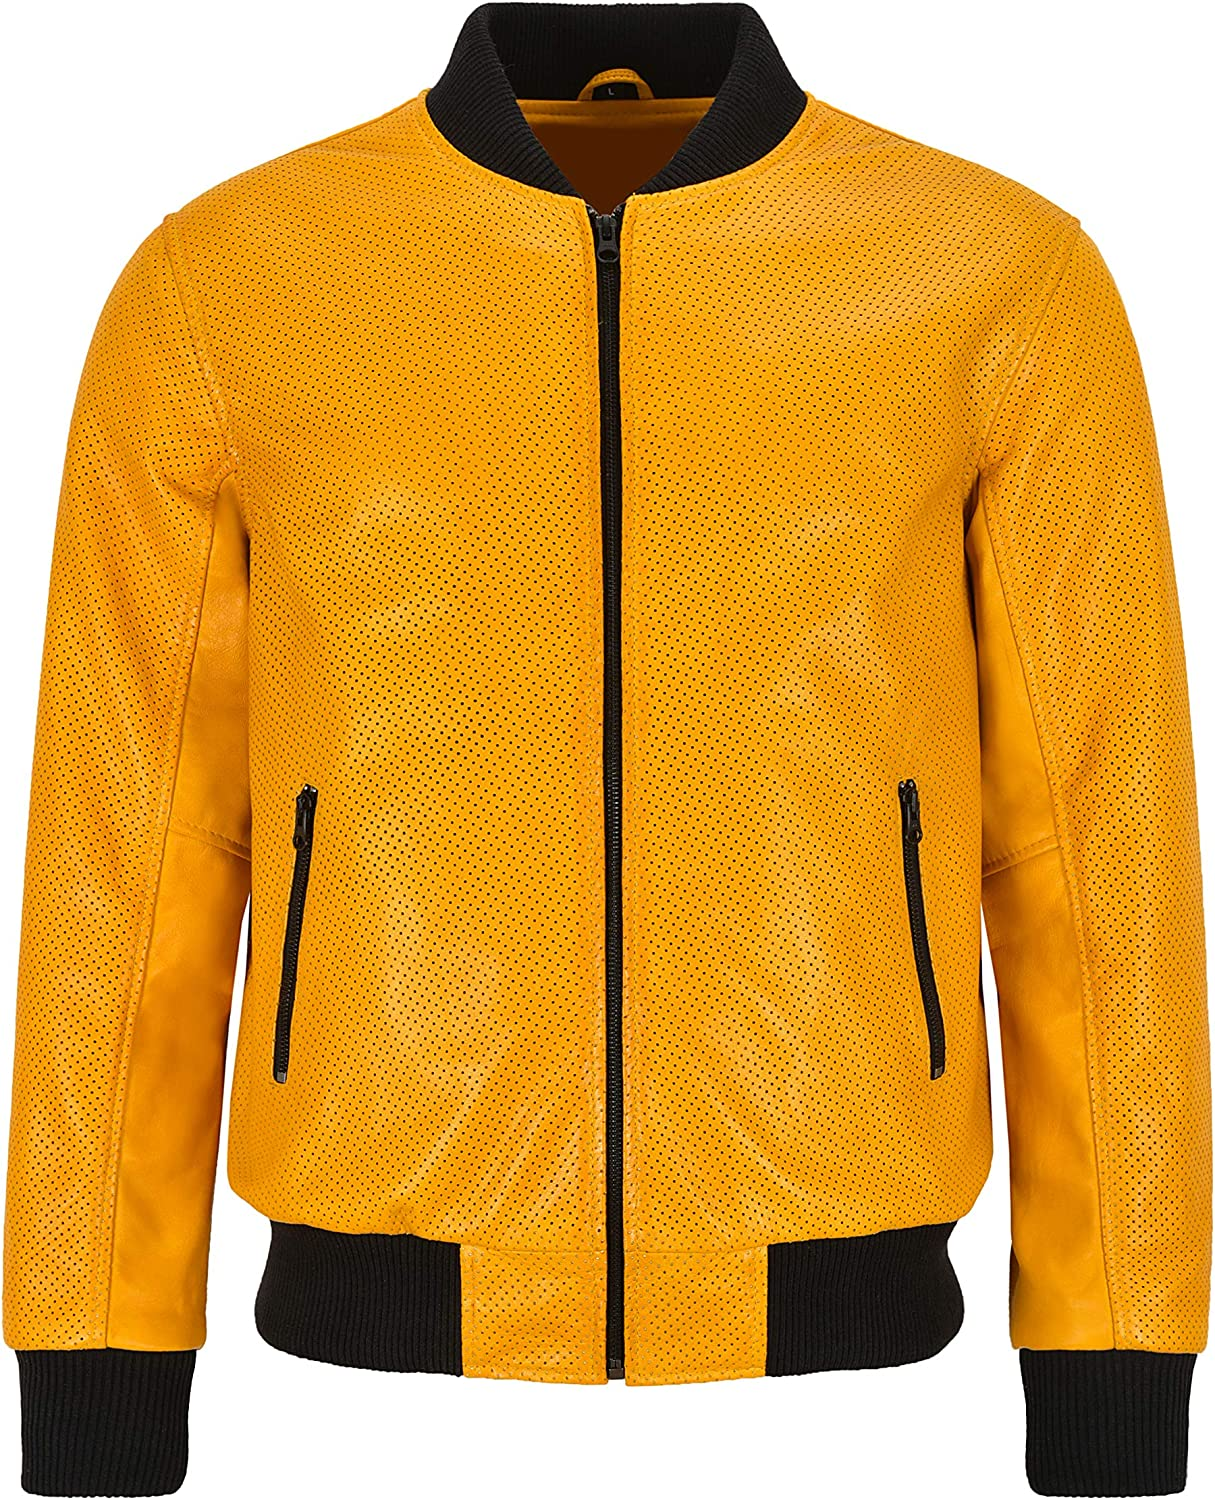 Men's Bomber Leather Jacket Perforated Yellow Mustard Napa Leather Classic Aviator Series 4987